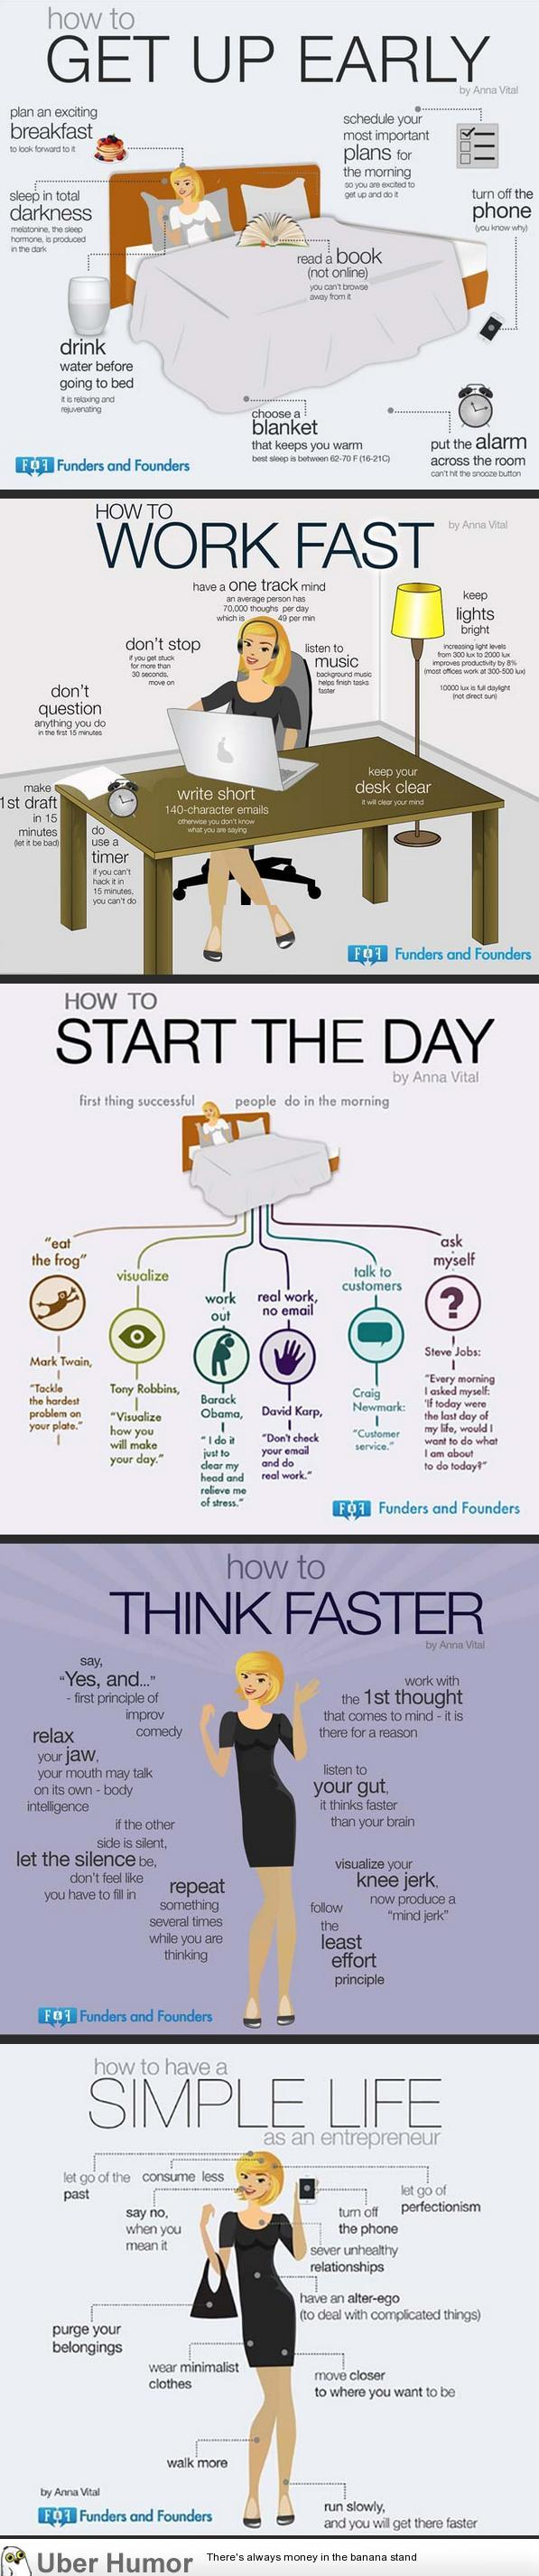 How to become more productive.